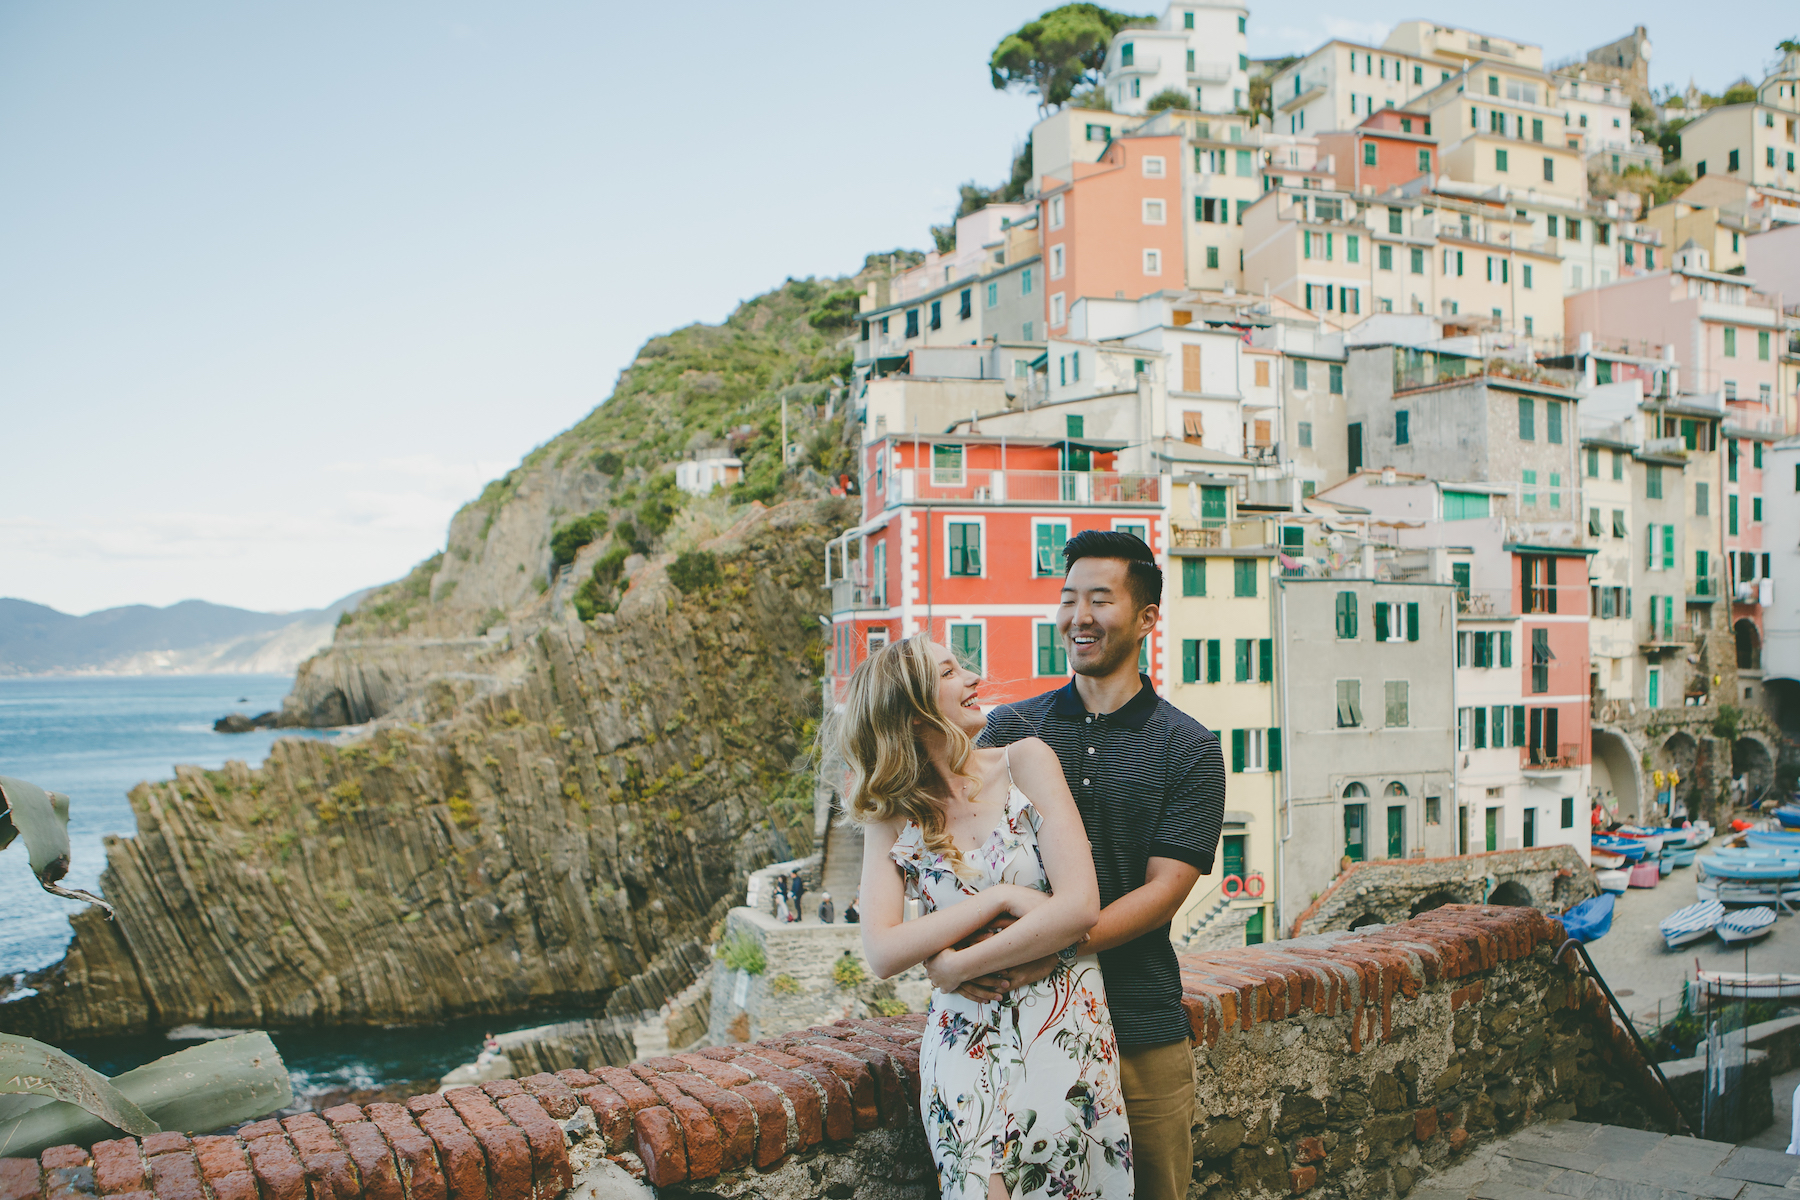 Top 10 Airbnb Rentals For Your Honeymoon In Italy